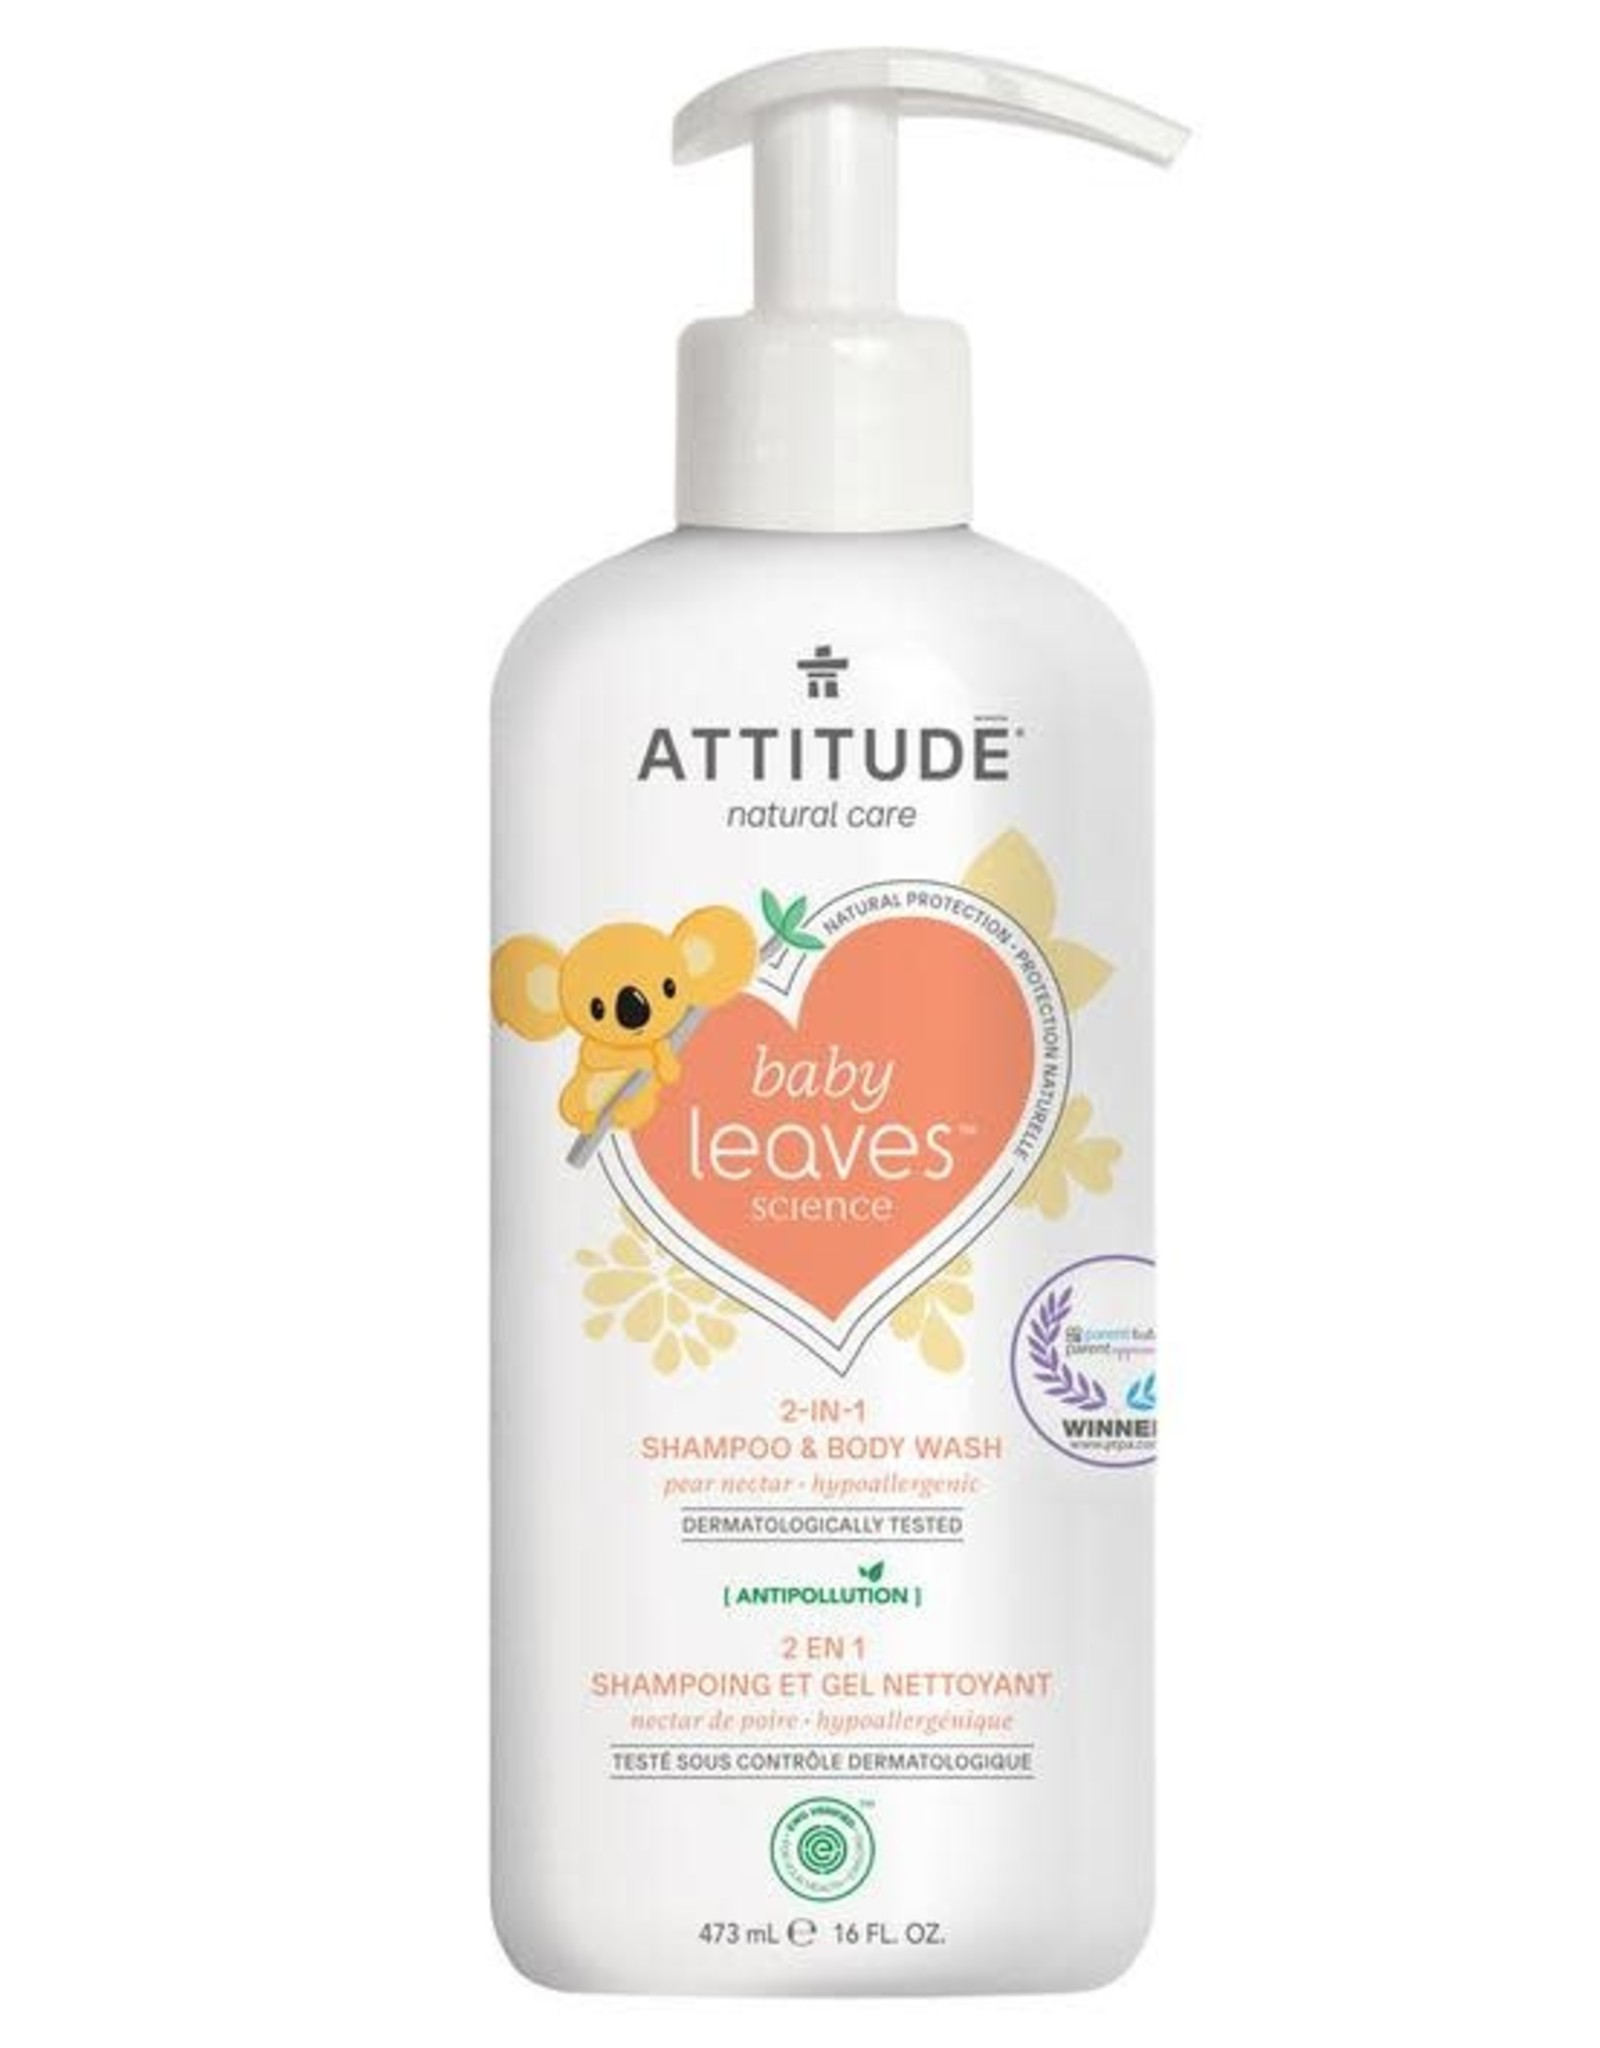 Attitude Attitude Baby Leaves 2 in 1 Shampoo & Body Wash pear nectar 473 ml